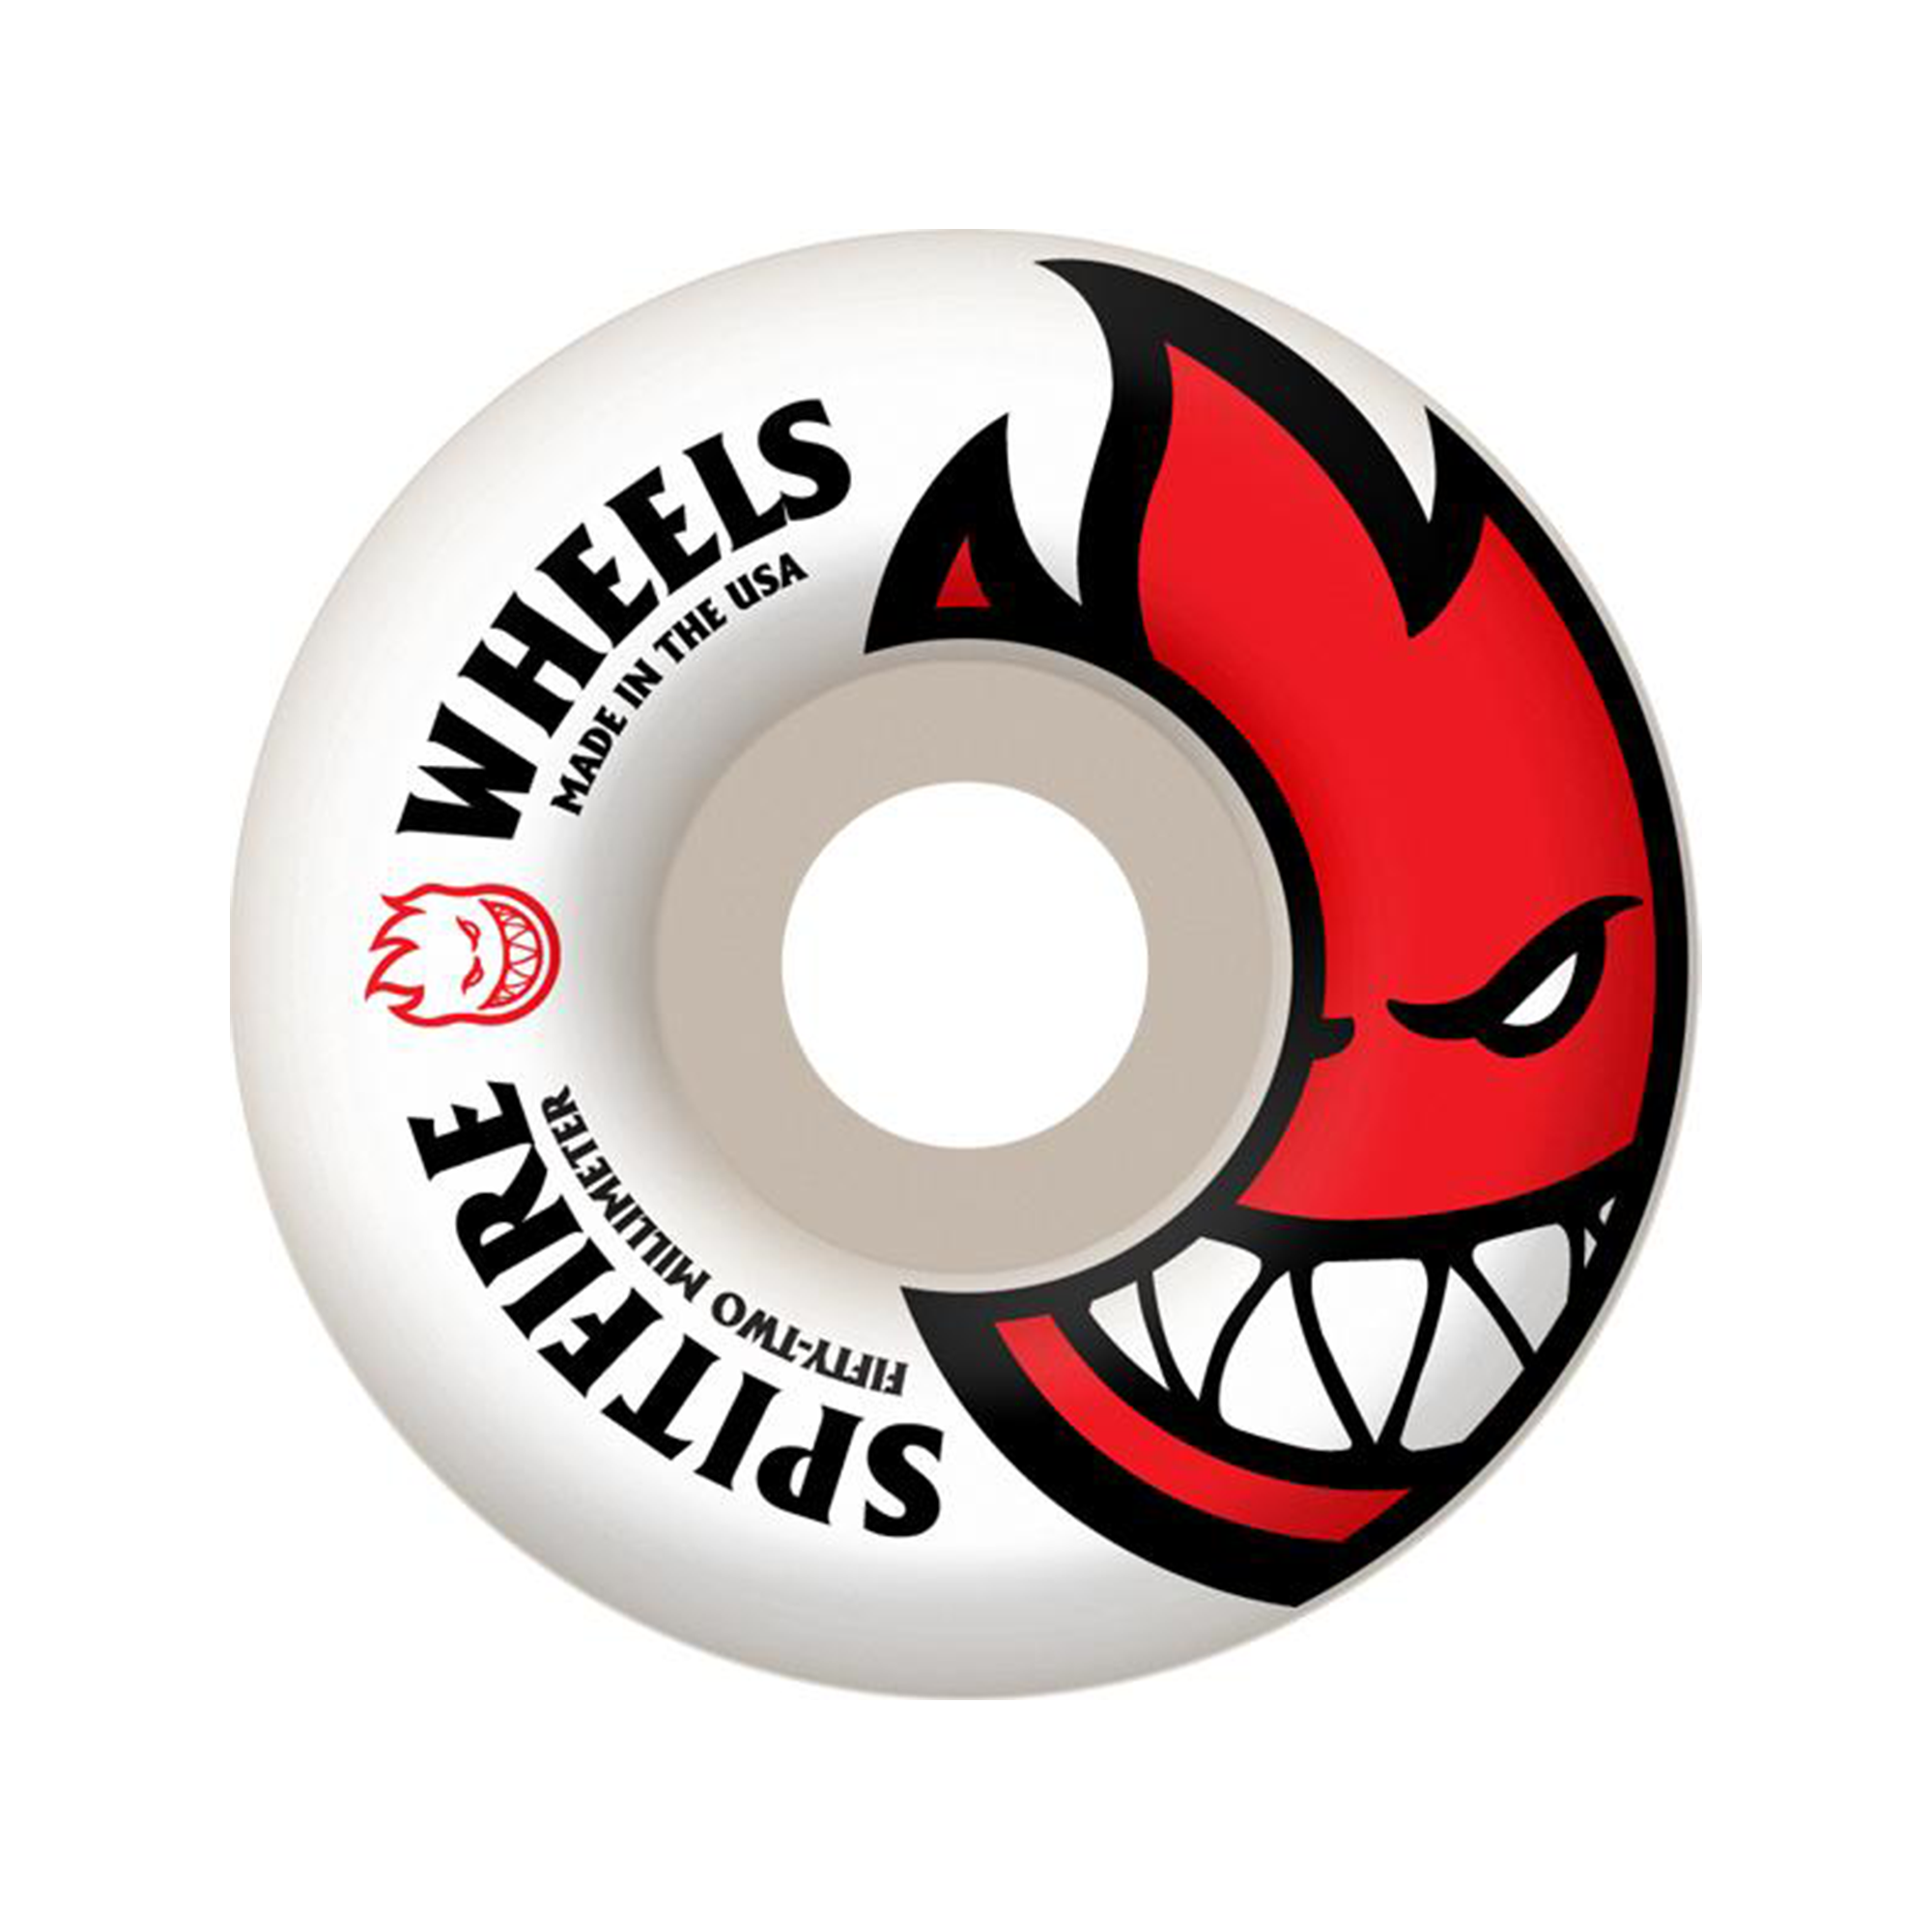 Spitfire Bighead Wheels Product Photo #1